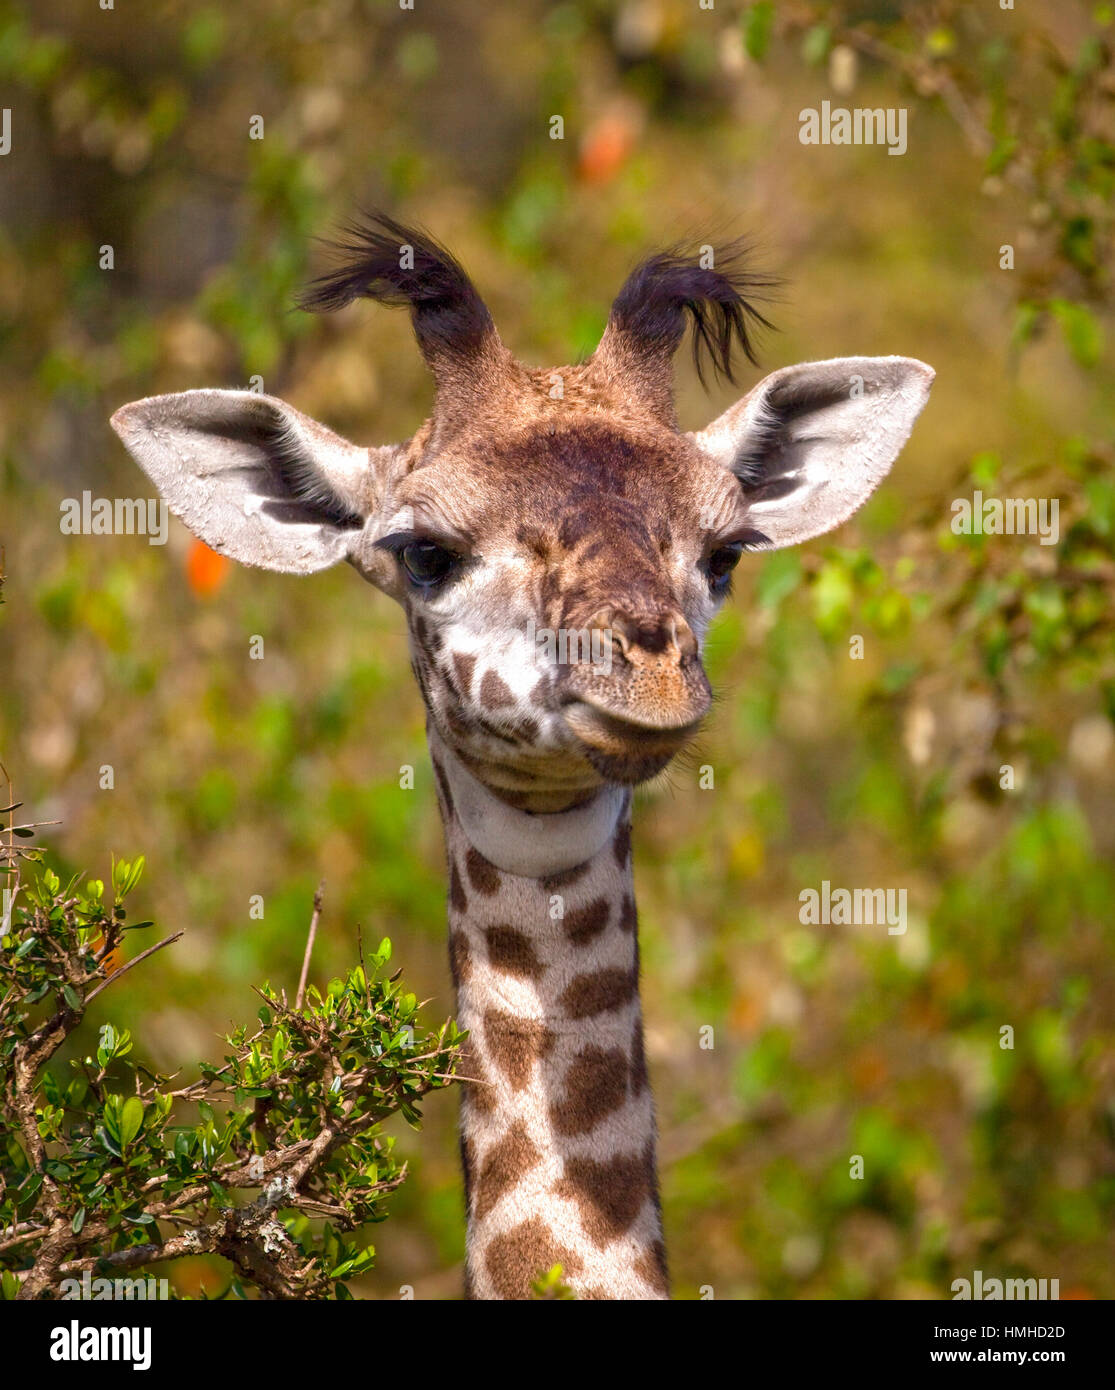 Adorable baby giraffe looking silly with foliage in background in Kenya - Stock Image